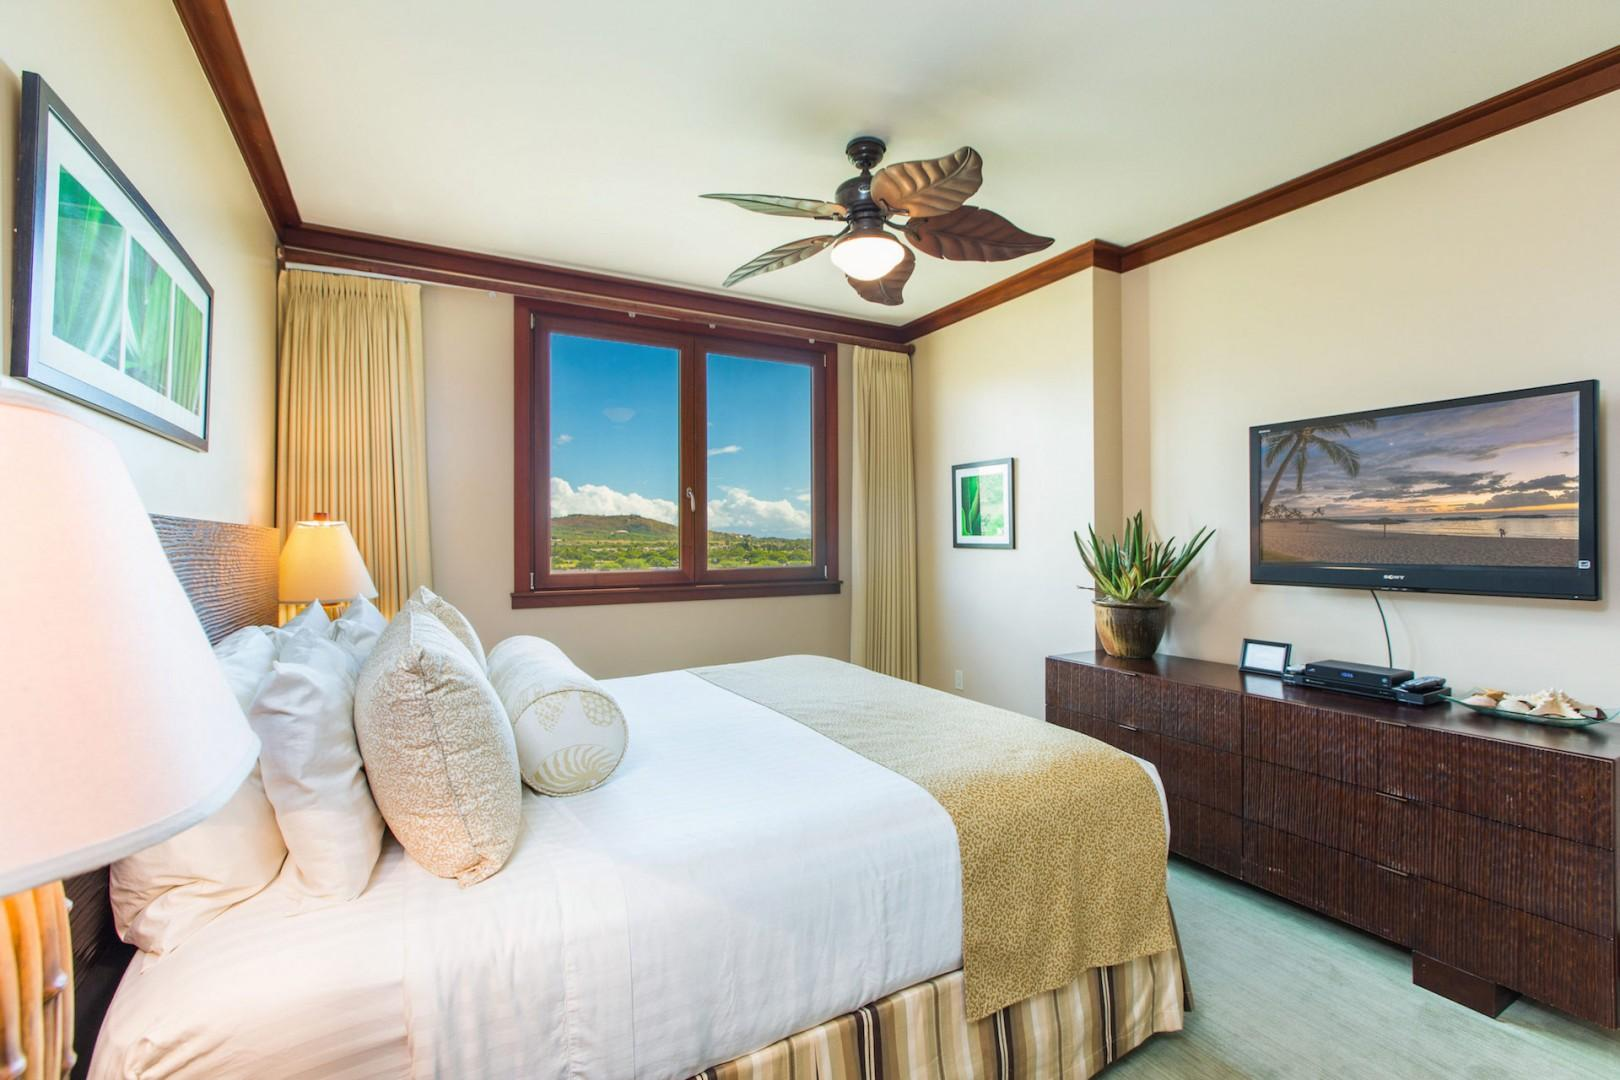 Master bedroom with king bed, wall mounted TV, ceiling fan, dresser, en suite bath; mountain and golf course views